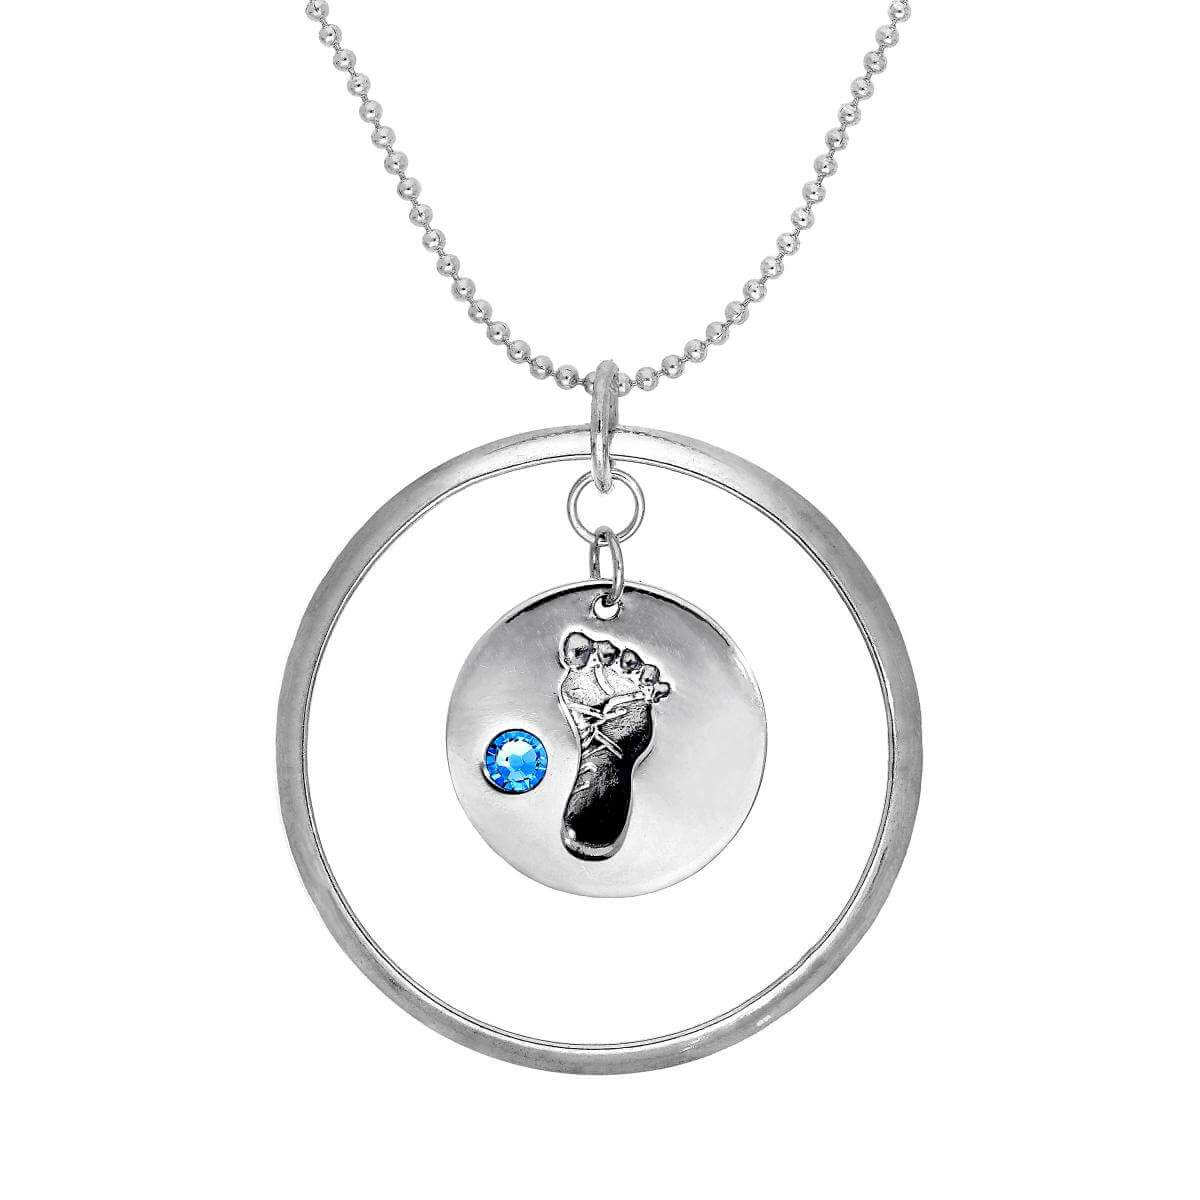 Sterling Silver Karma Moments Pendant with Birthstone Baby Footprint Charm on Bead Chain Necklace